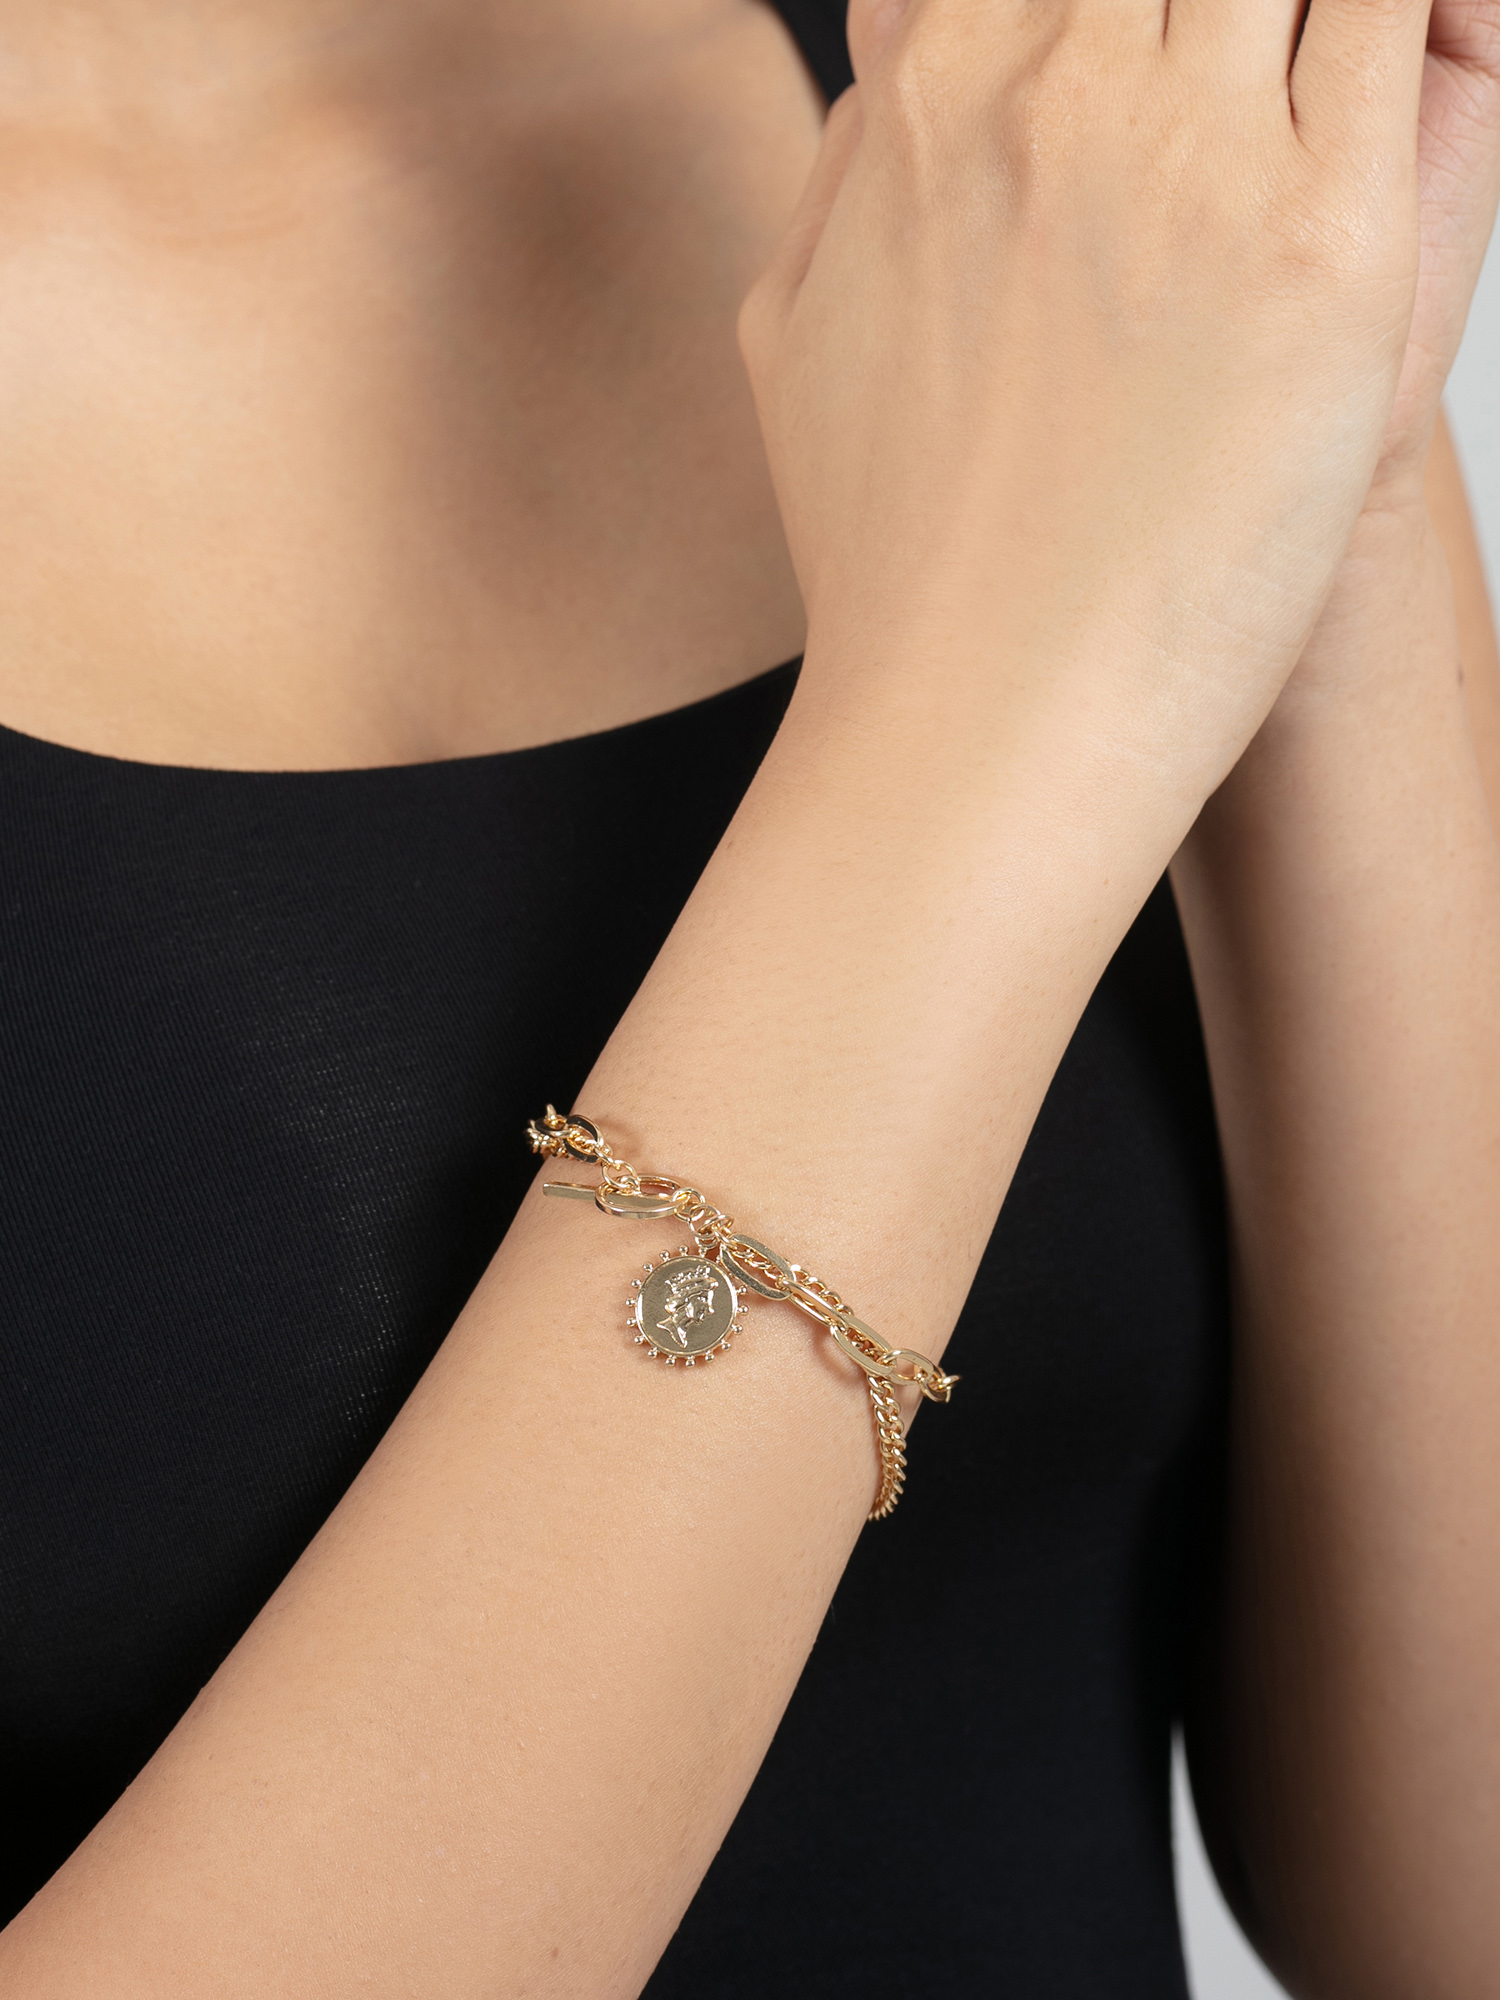 Cuffs and Bangles-Charmed By You Bracelet5